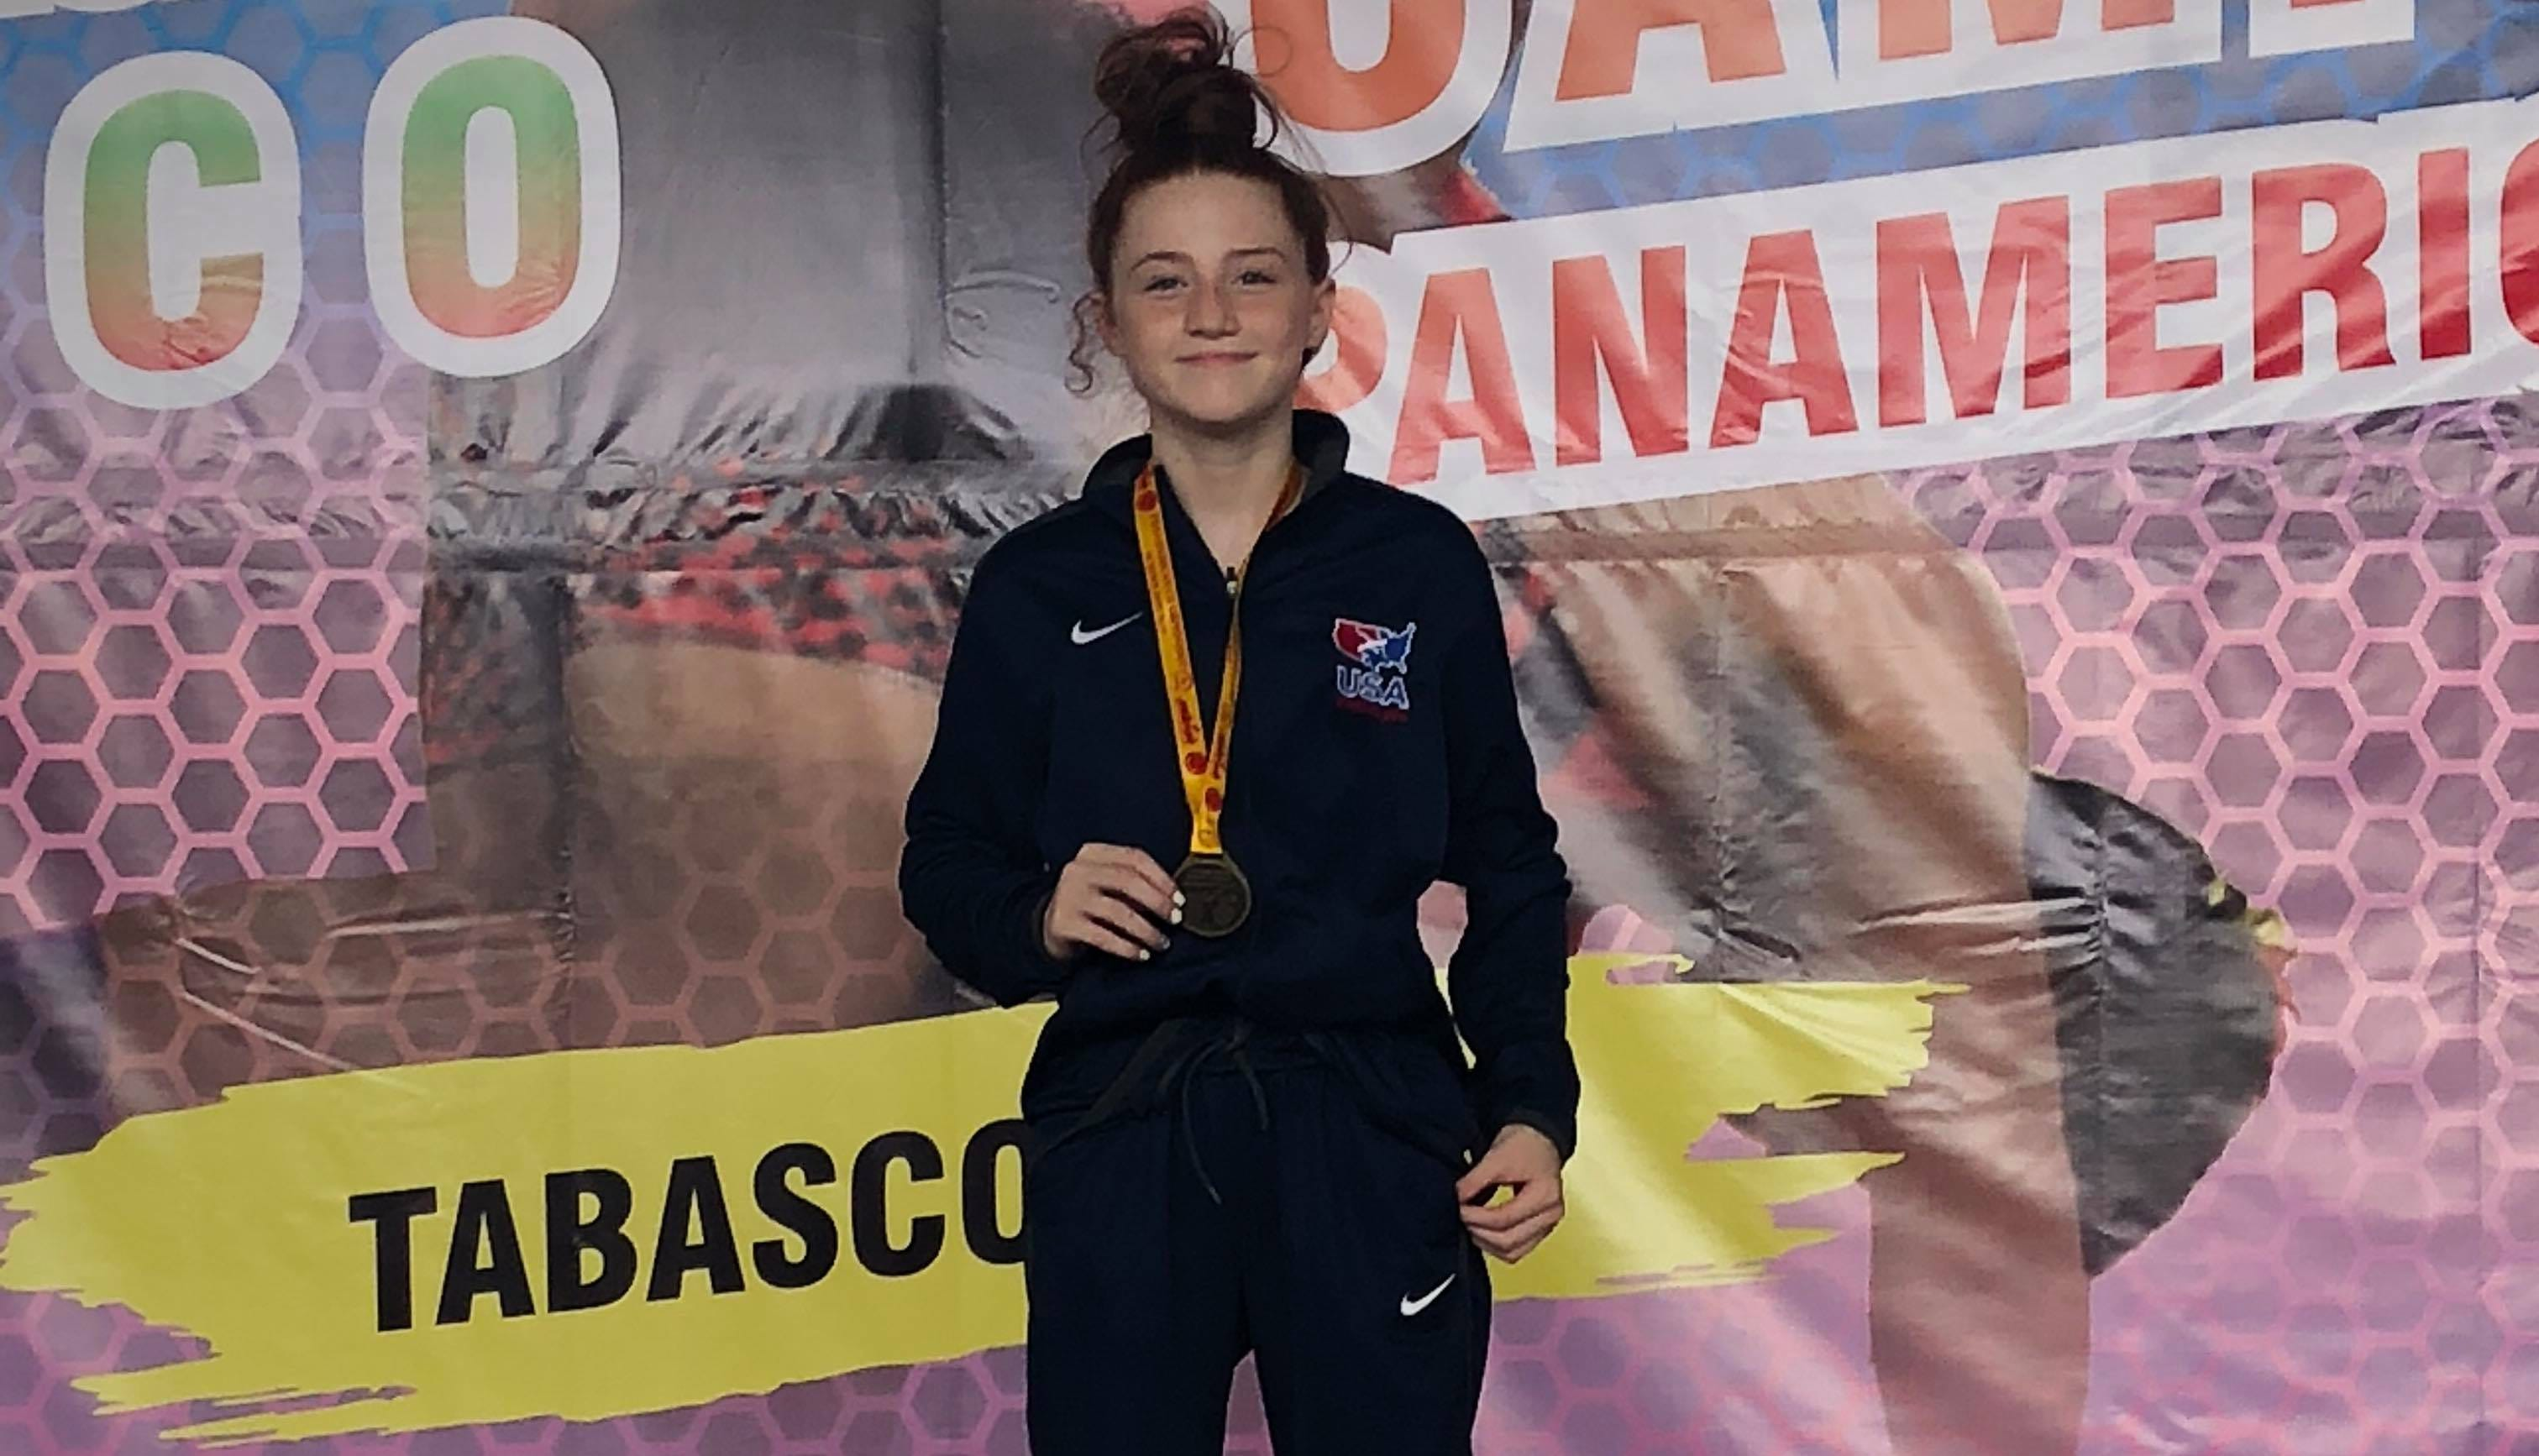 Maddi Wellen poses with her gold medal that she earned at the Pan American U15 Girls freestyle wrestling championships held in Villahermosa, Mexico on Sept. 14, 2018.